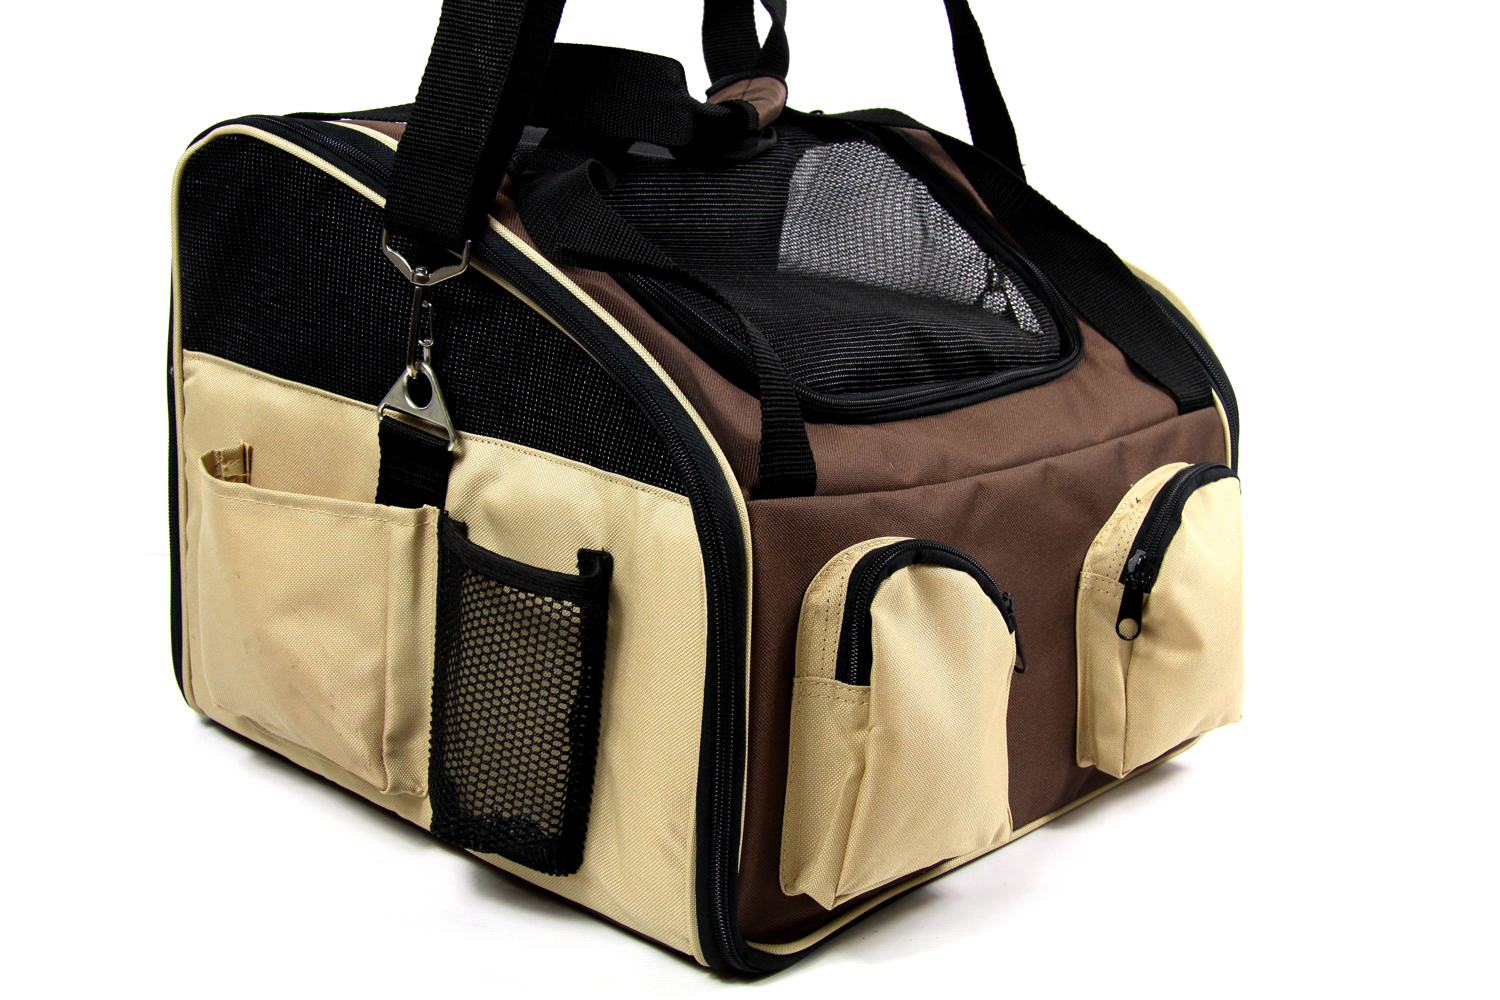 small pet dog cat puppy carrier car seat travel shoulder hand tote bag booster ebay. Black Bedroom Furniture Sets. Home Design Ideas